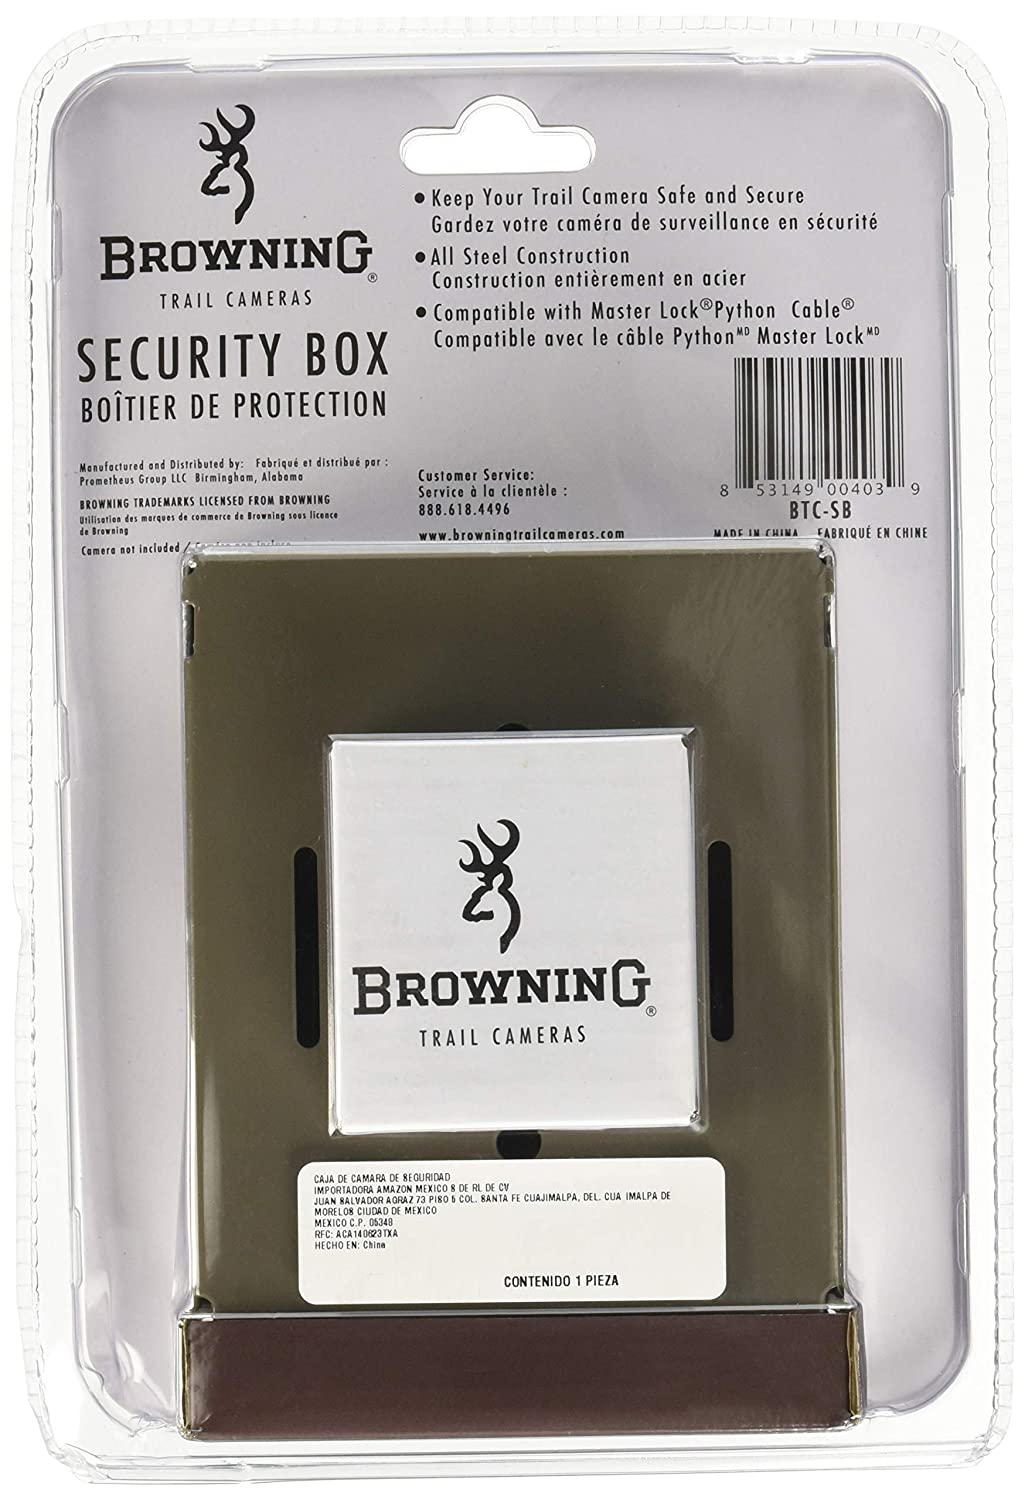 Browning Trail Cameras Security Box